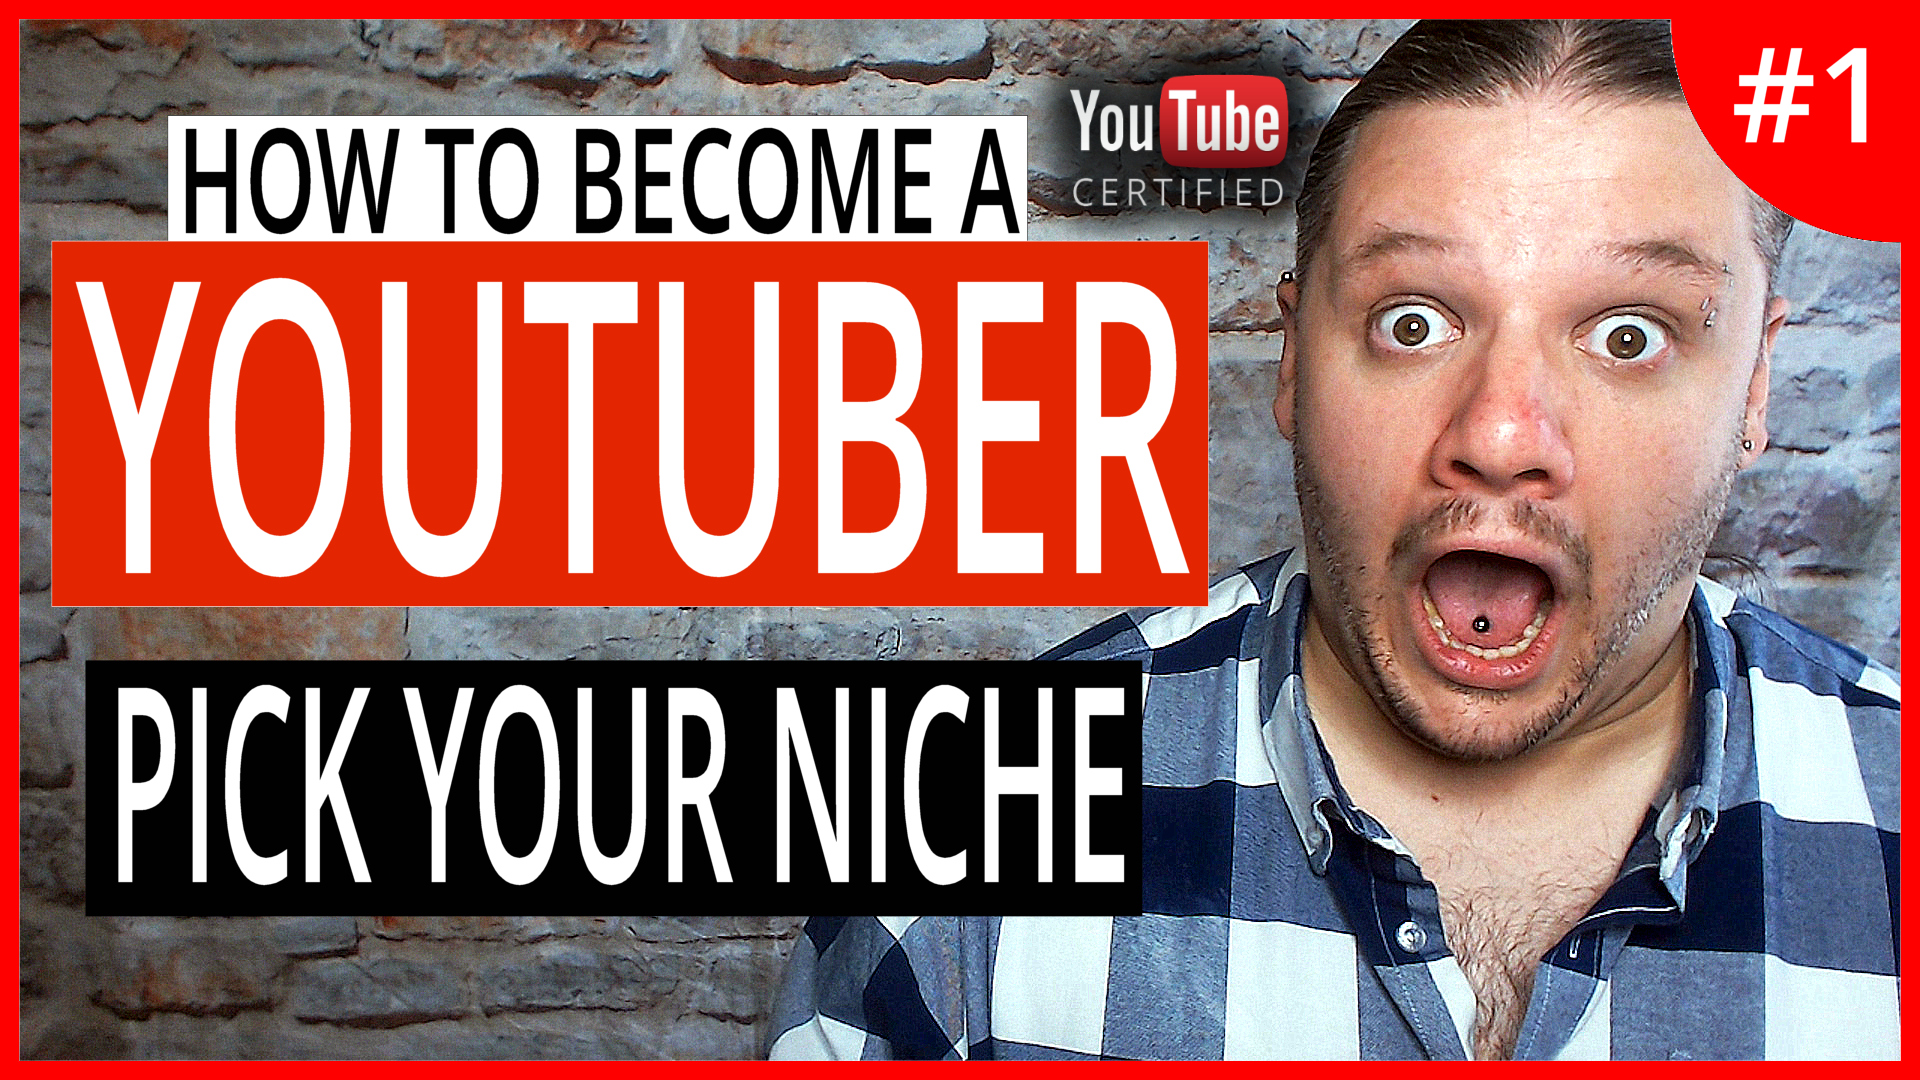 alan spicer,alanspicer,asyt,how to find your niche,how to find your niche market,find your niche,how to find your niche on youtube,what to make your youtube channel about,youtube niches,youtube niche ideas,find a niche,pick your niche,how to pick your niche,youtube channel niche,youtube niche,youtube niche ideas 2018,youtube niches 2018,youtube niche finder,how to become a youtuber,pick a niche,your niche,what to make a youtube channel about,niche,youtube